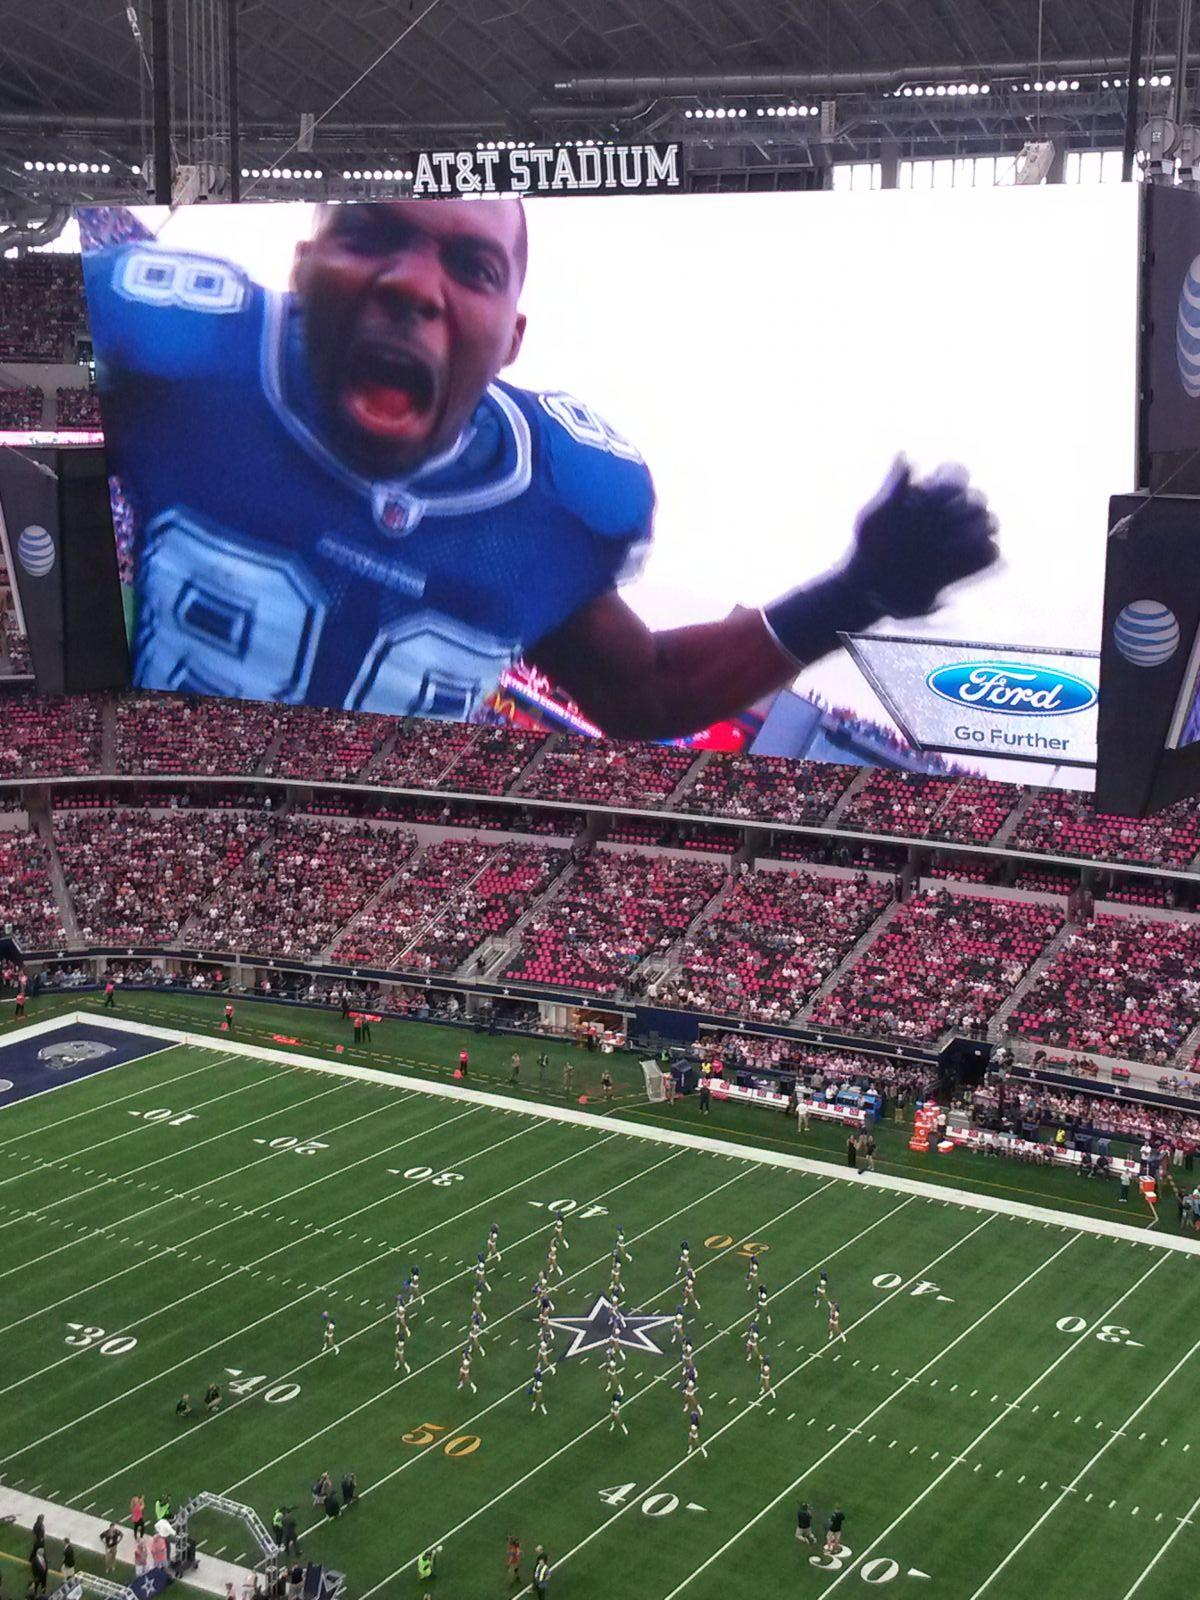 Dallas Cowboys Seat View for AT&T Stadium Section 409, Row 10, Seat 6